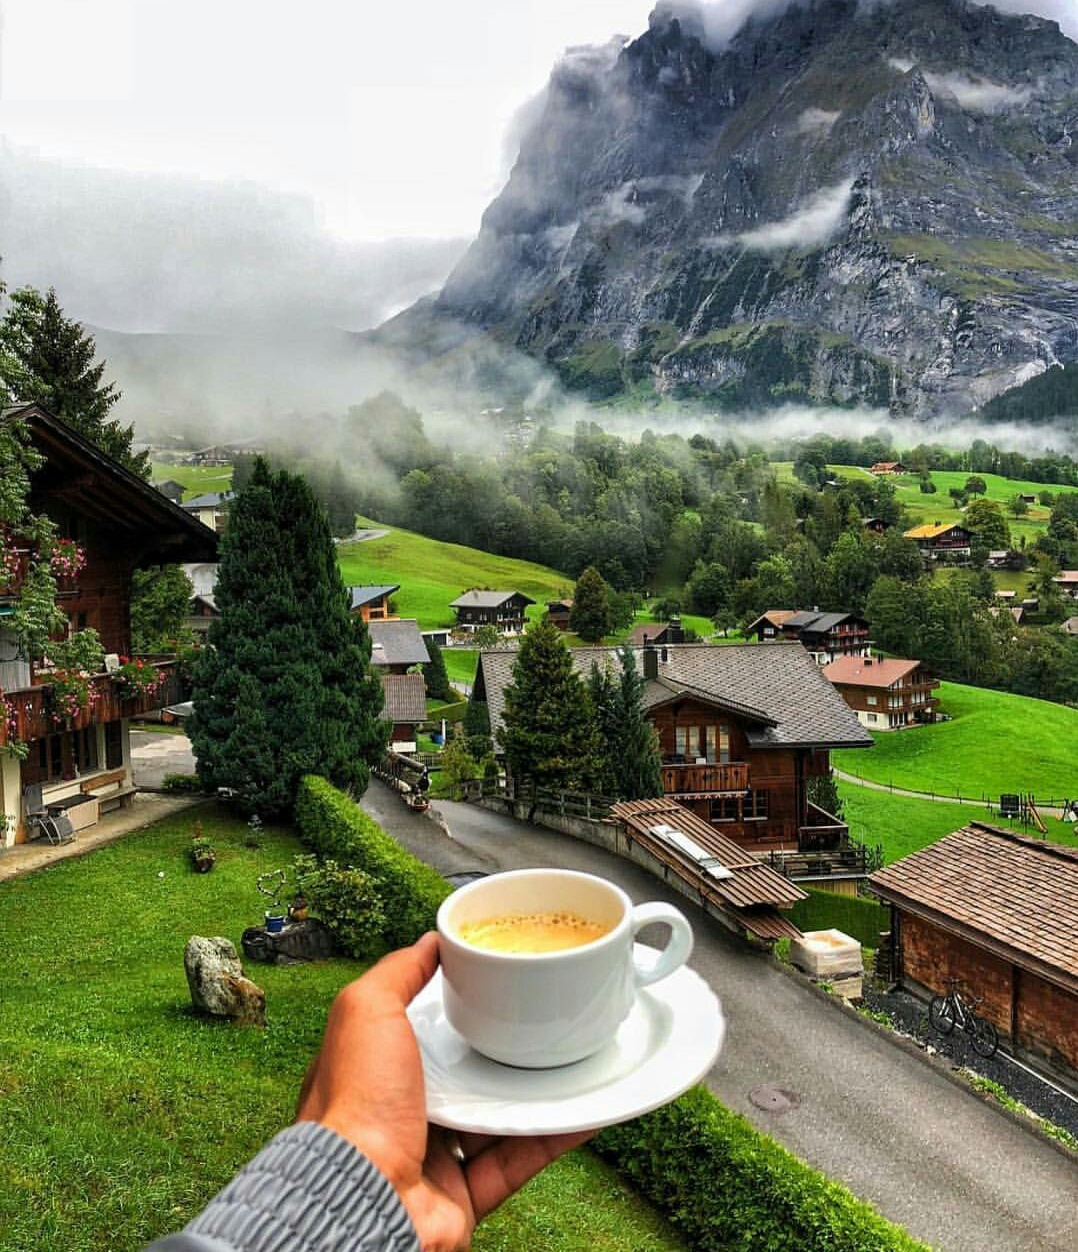 Drink Cafe inside your hotel room to Save Money While Traveling